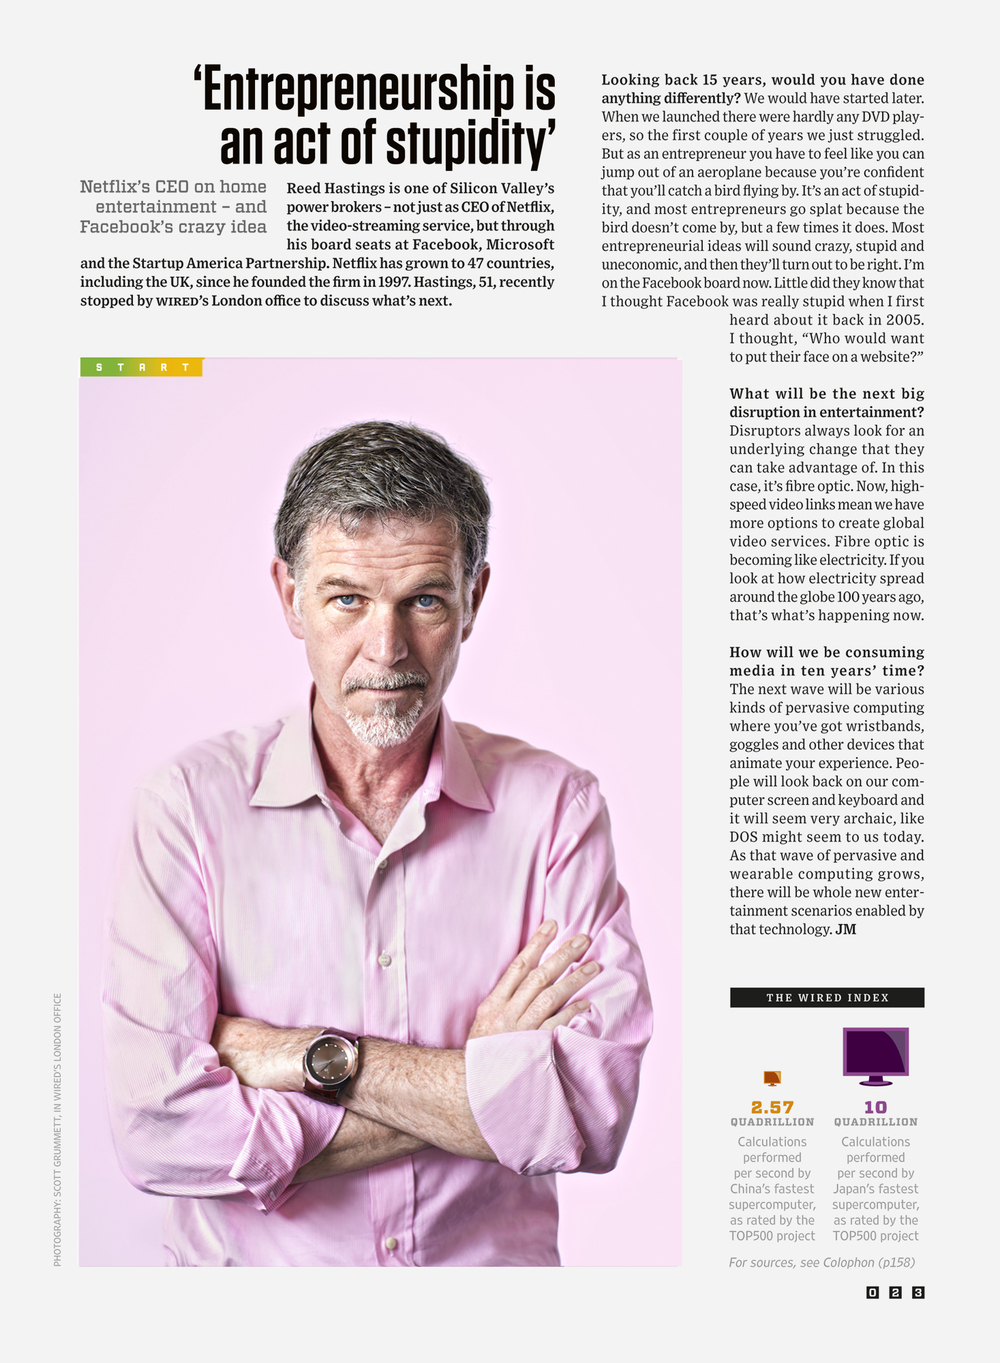 Wired: Reed Hastings, CEO Netflix.